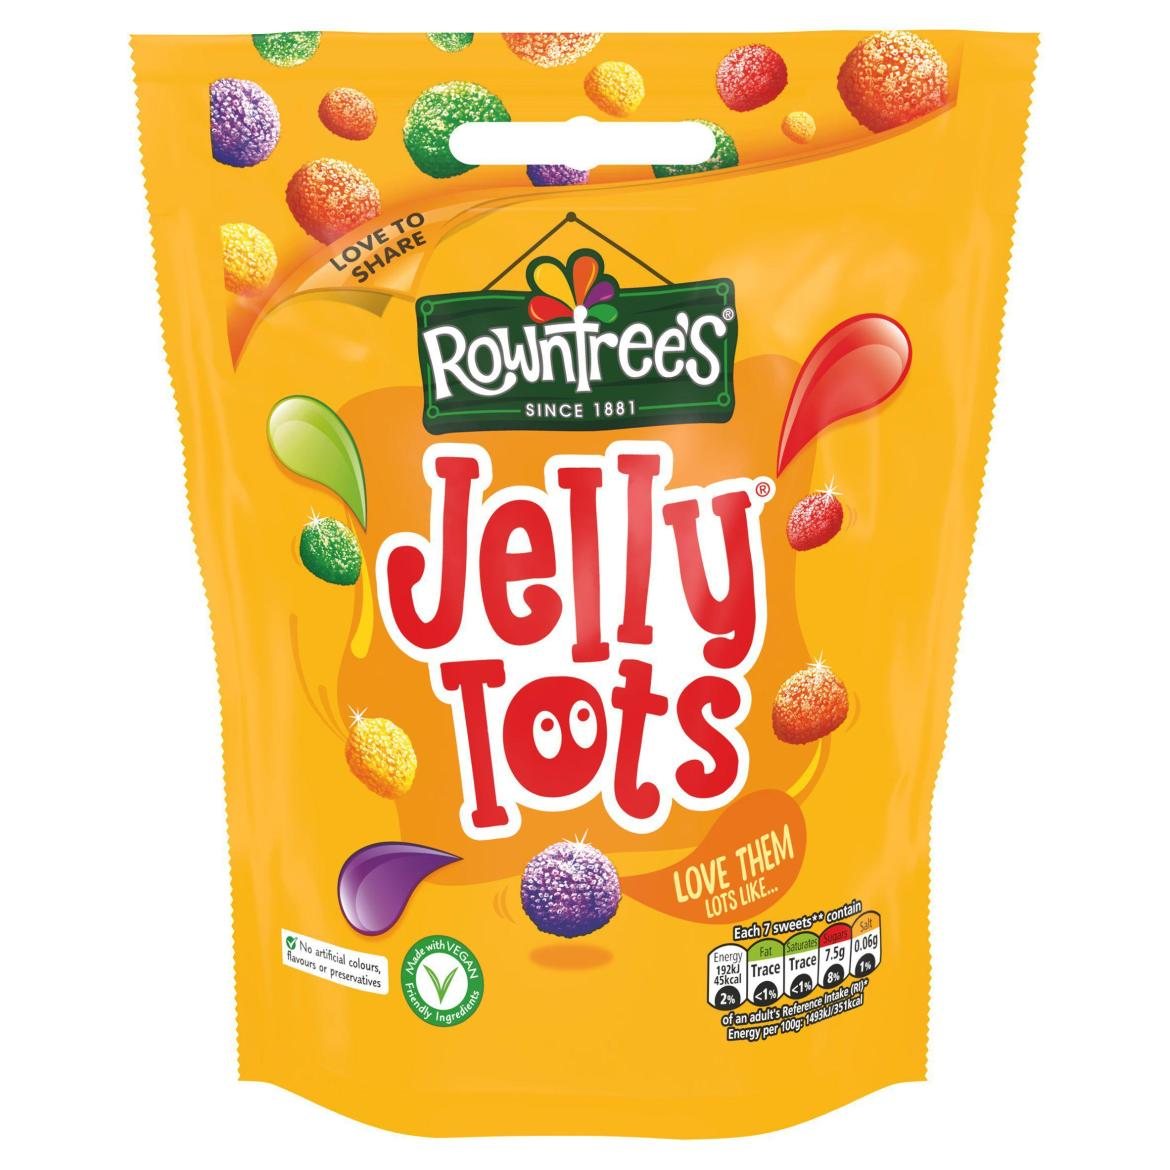 Jelly Tots are great...